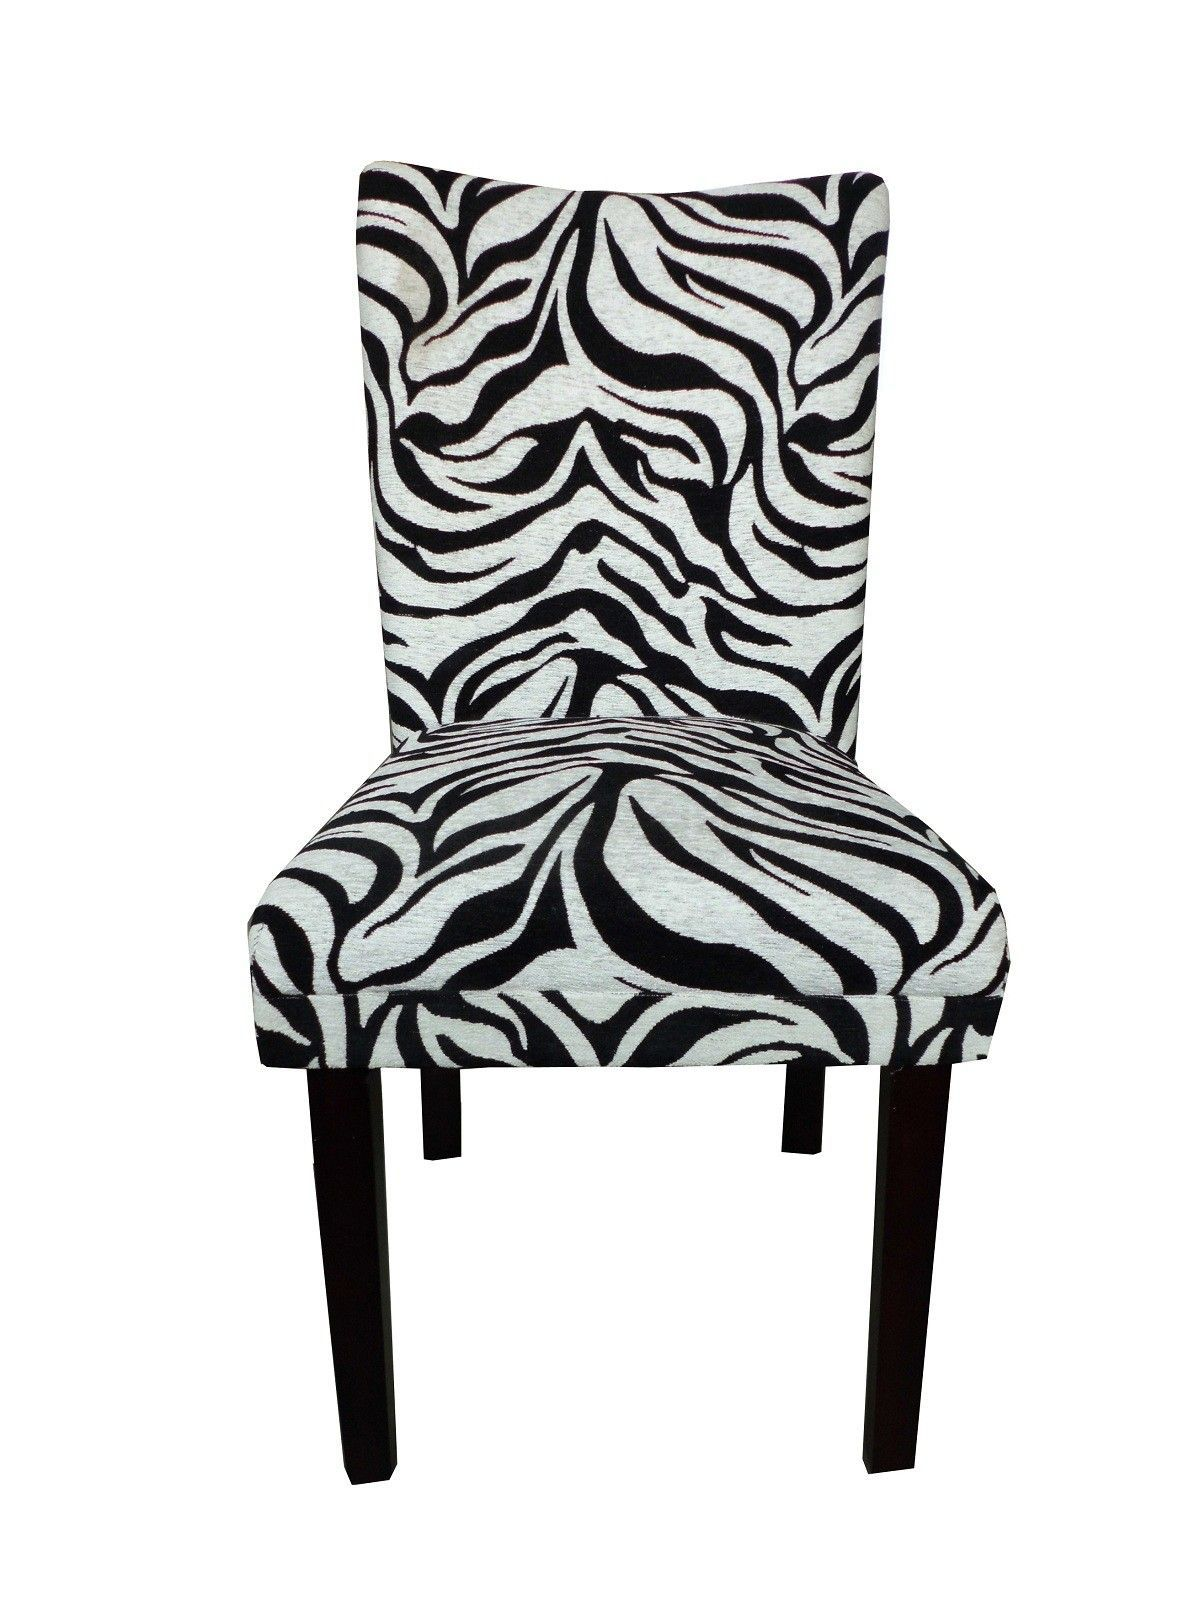 Tiger Striped Parsons Chair Products Pinterest